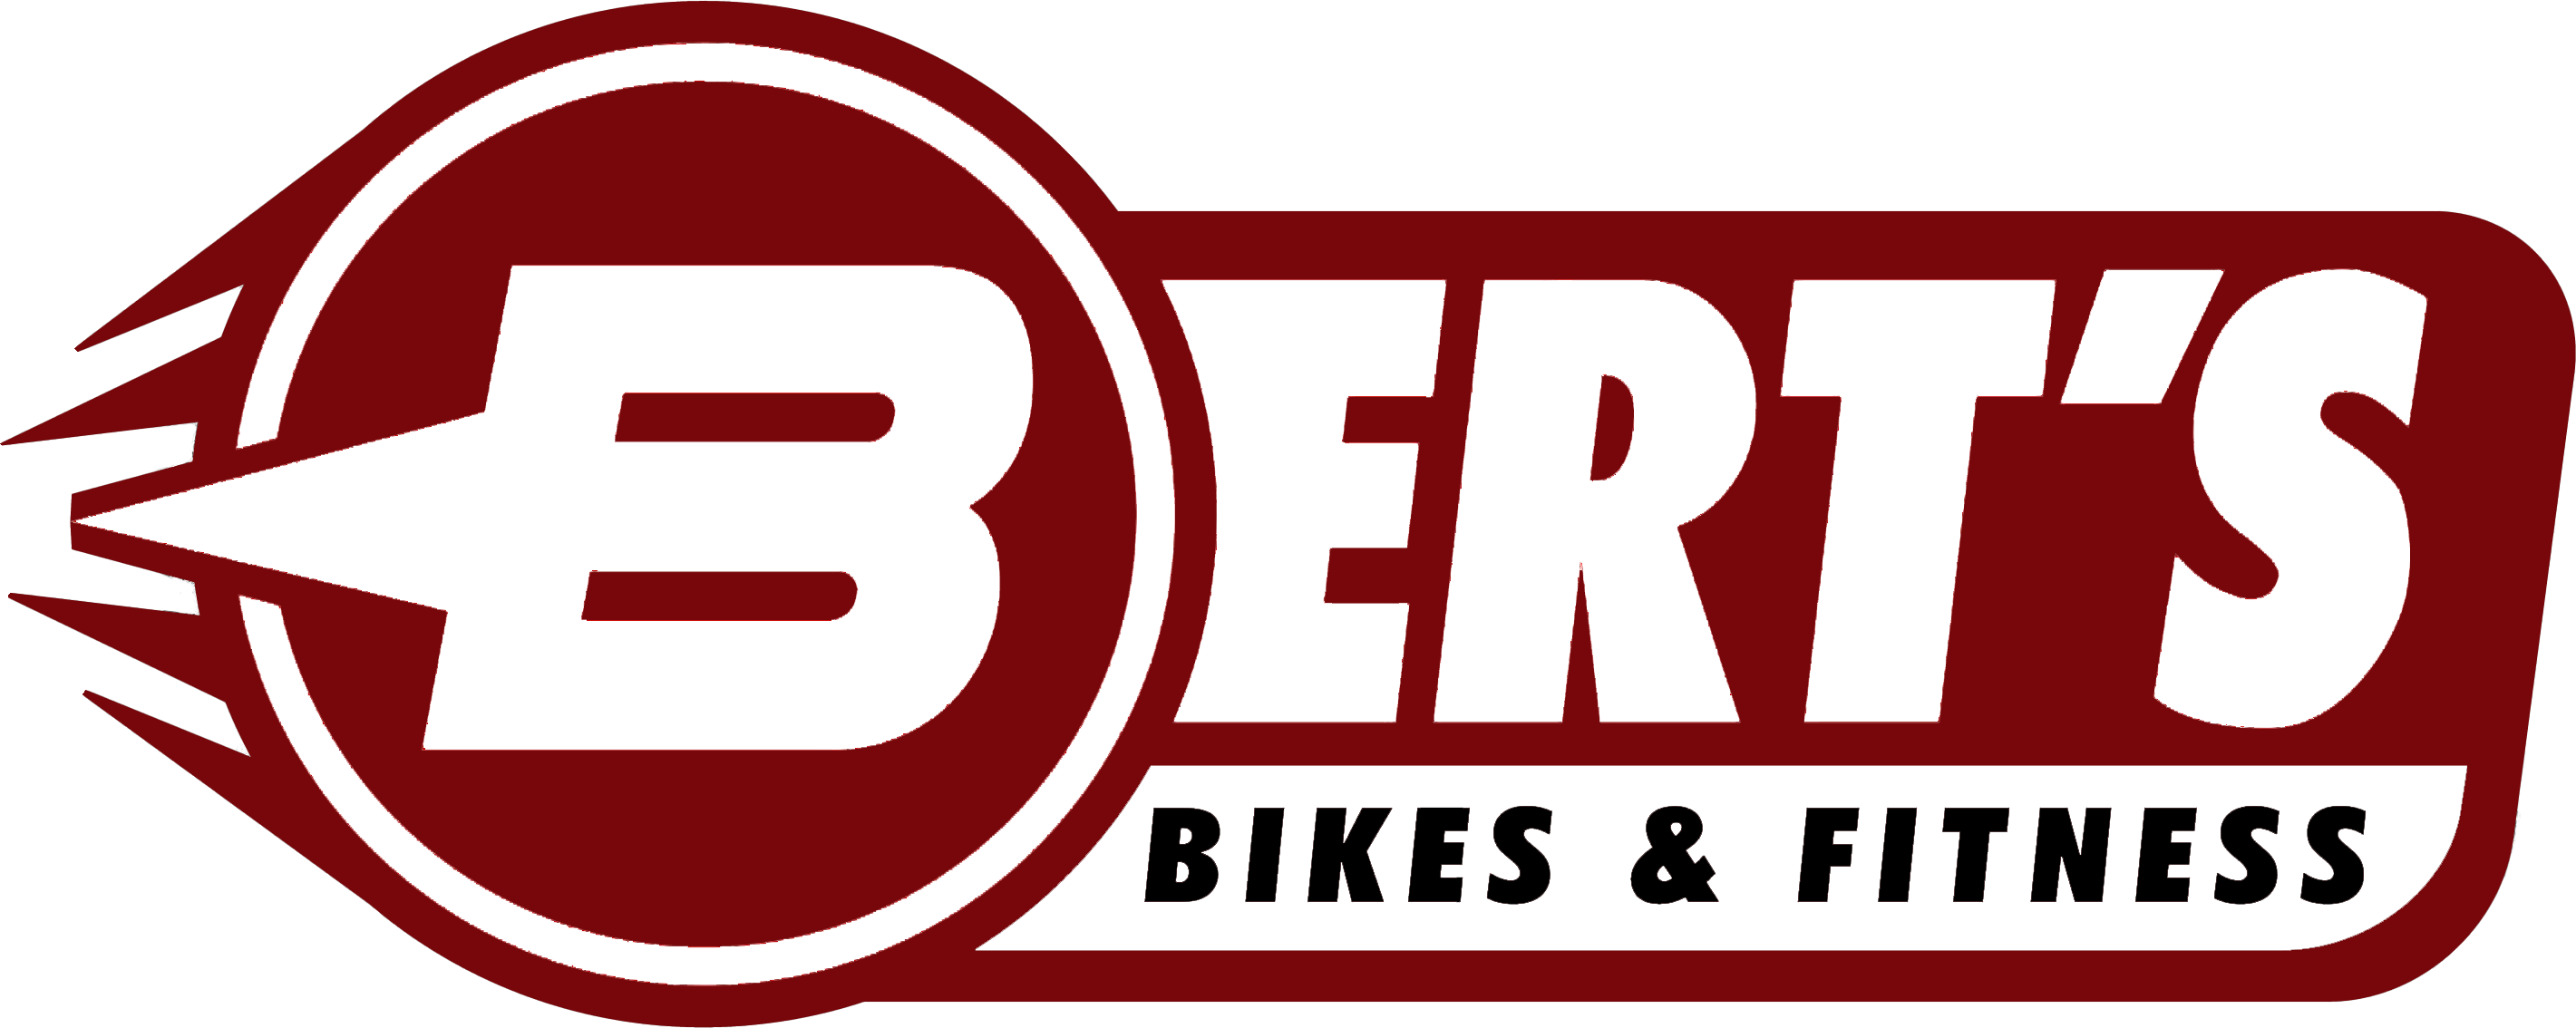 Bert's Bikes & Fitness Home Page